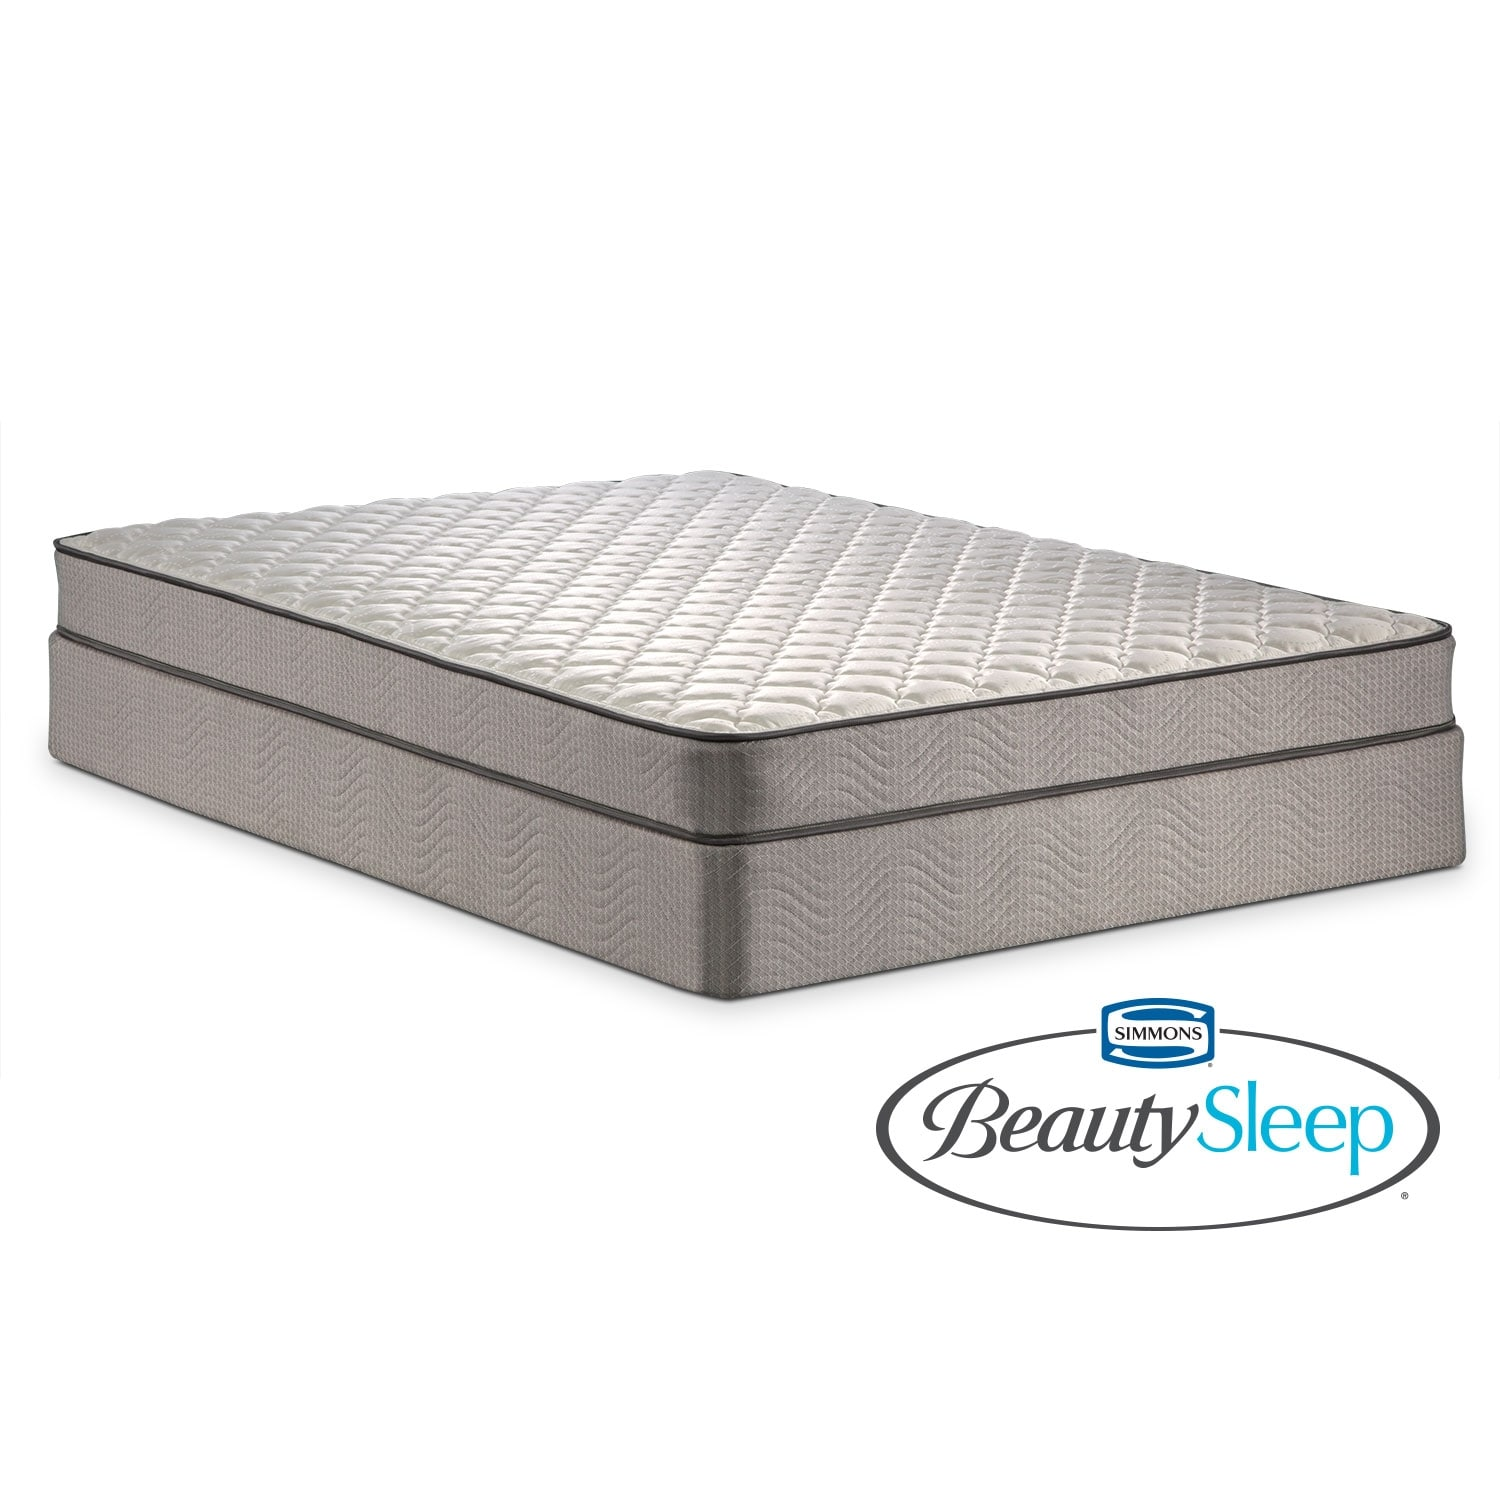 Oakdale Firm Full Mattress and Foundation Set